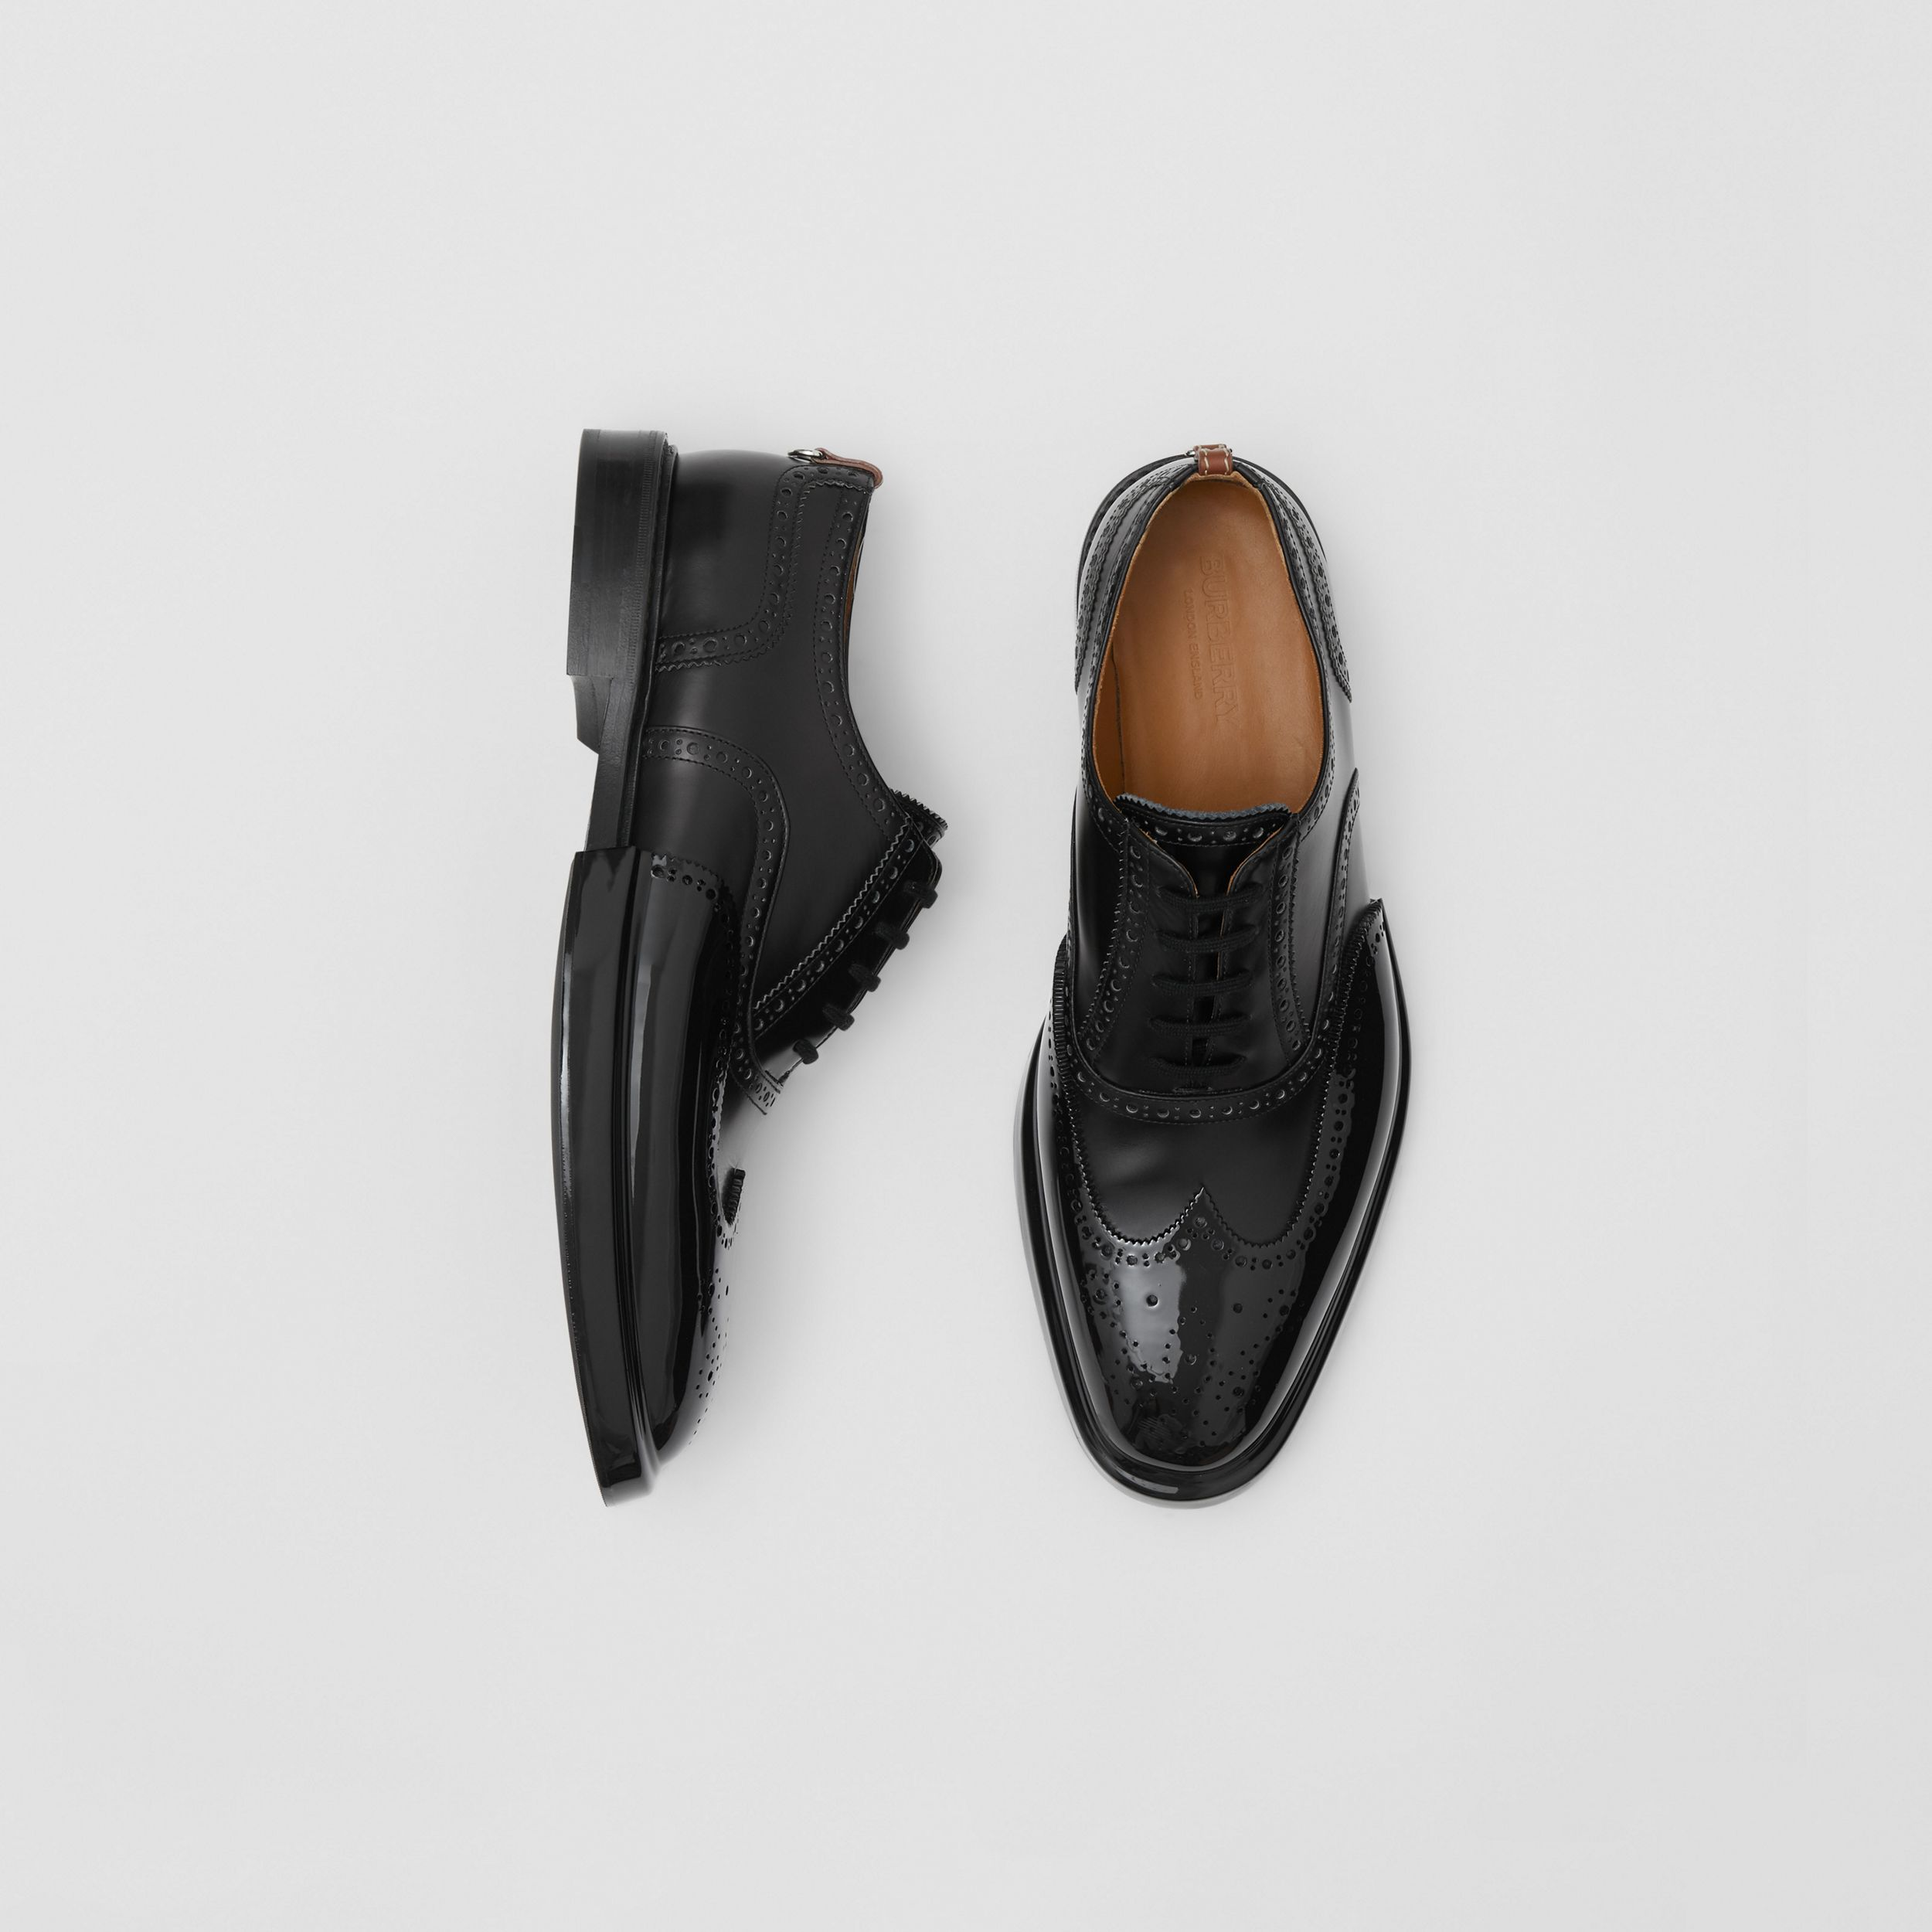 Toe Cap Detail Leather Oxford Brogues in Black - Men | Burberry - 1